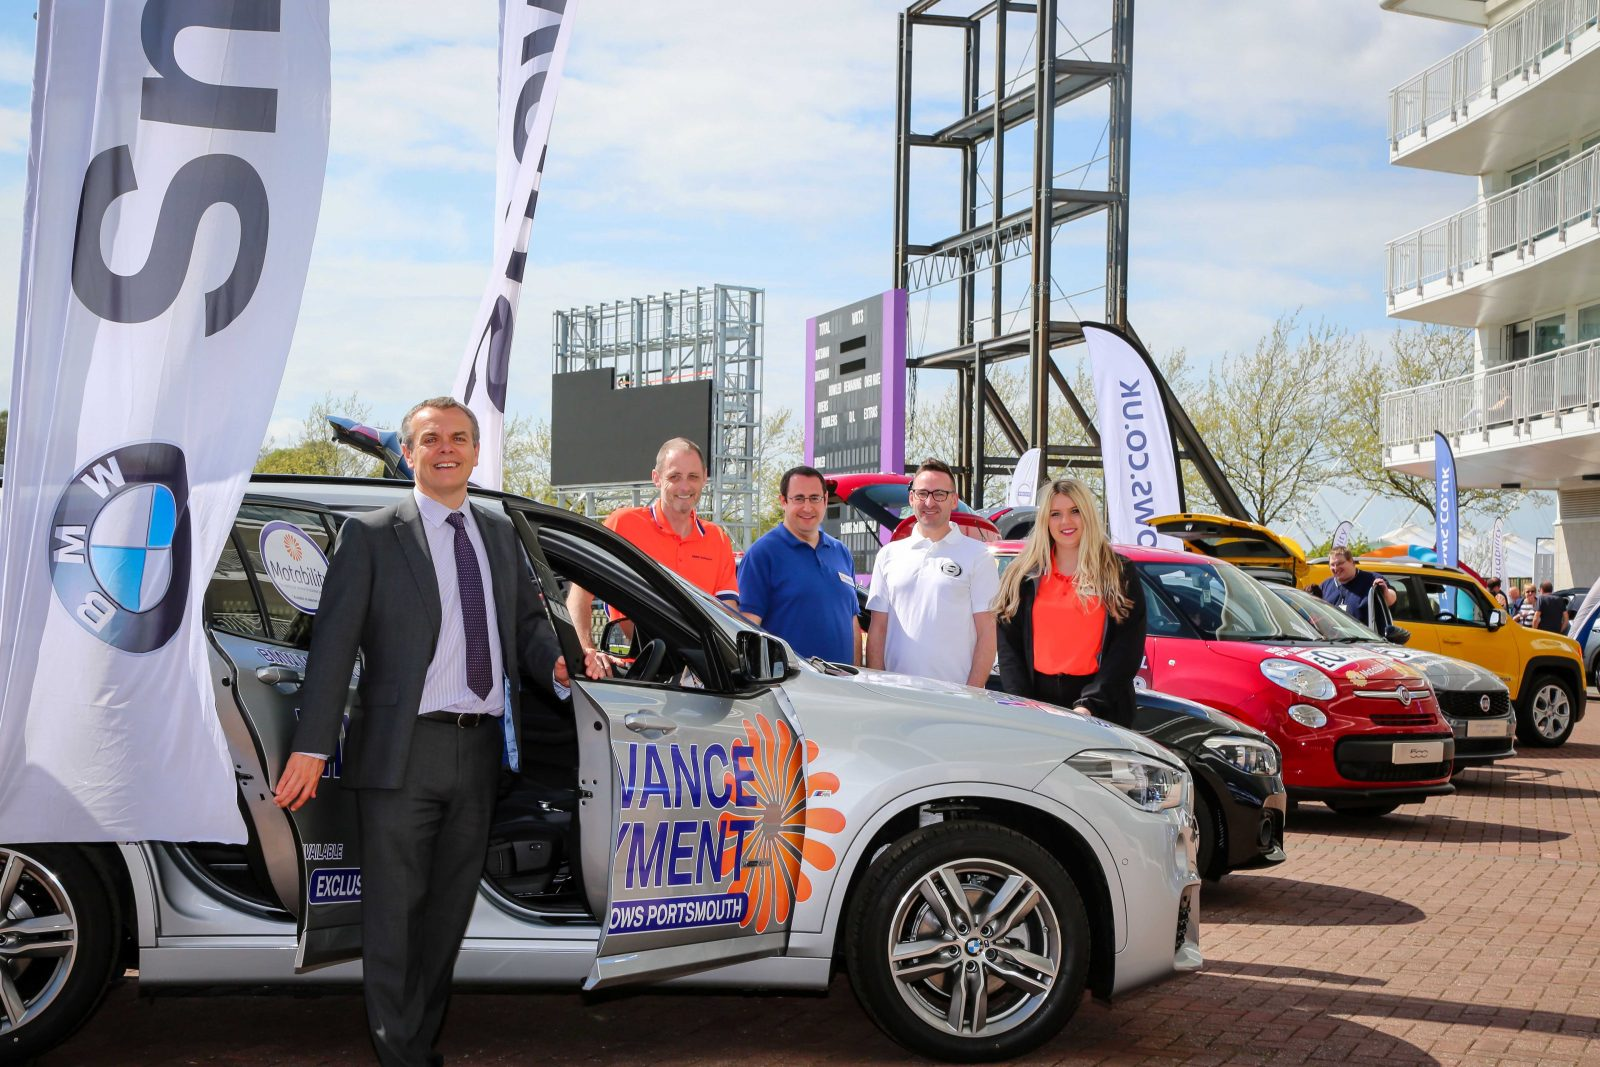 Snows And Other Dealerships Join For A Motability Scheme